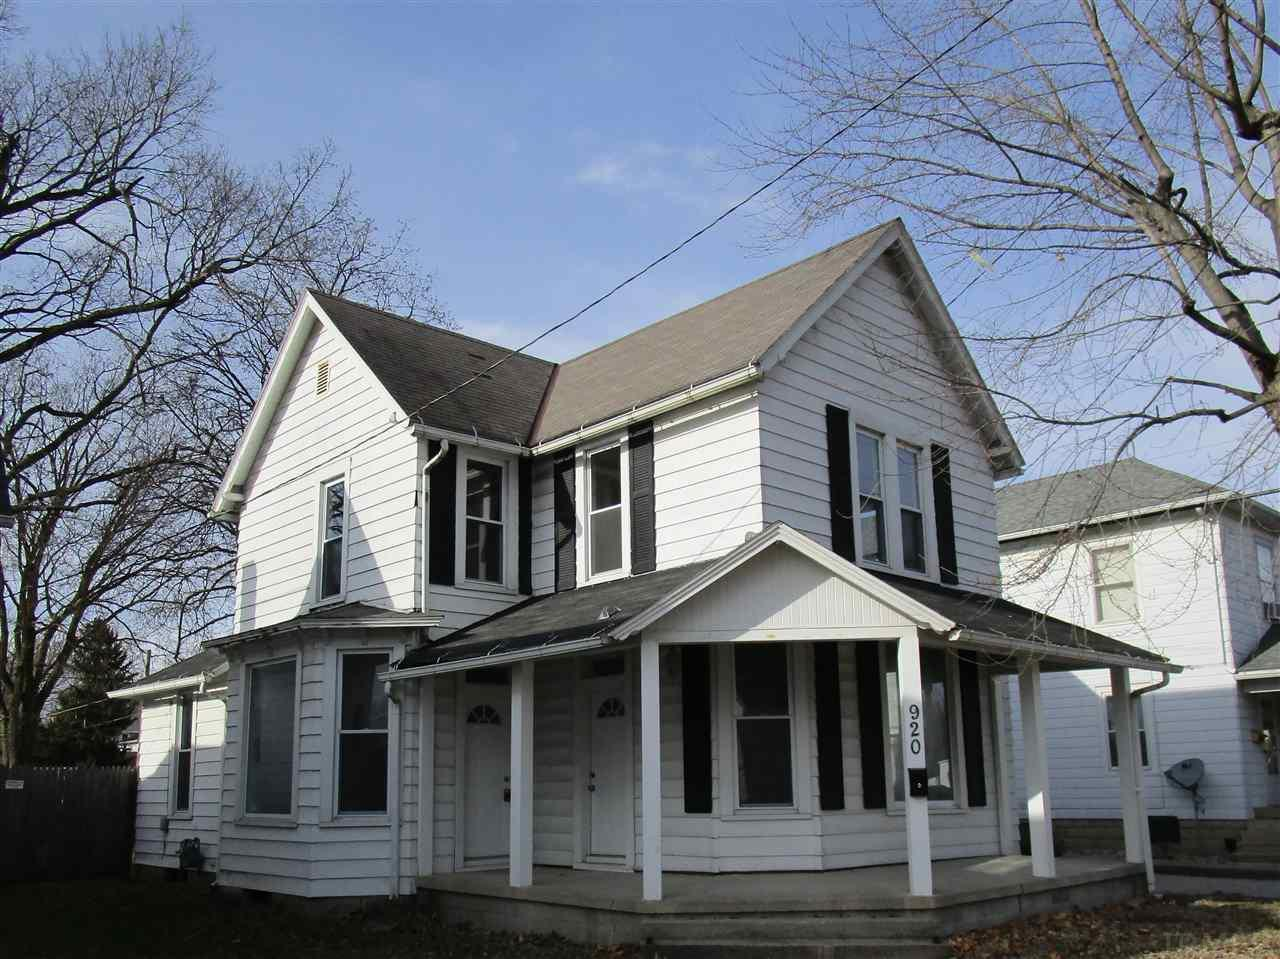 Remodeled 4 Bedroom Home on First Street in Huntington! Be sure to view this wonderful Recently updated home. Enjoy upcoming Spring and Summer Days on the wonderful covered front porch... inside you will find 4 bedrooms including a main level master bedroom! Lots of space and  Conveniently located on Huntington's Northside near old 24 with lots of charm and character, outside you will love  the privacy fenced yard and the care and updates that have been put into this home..... Celebrate the New Year by Touring this home...